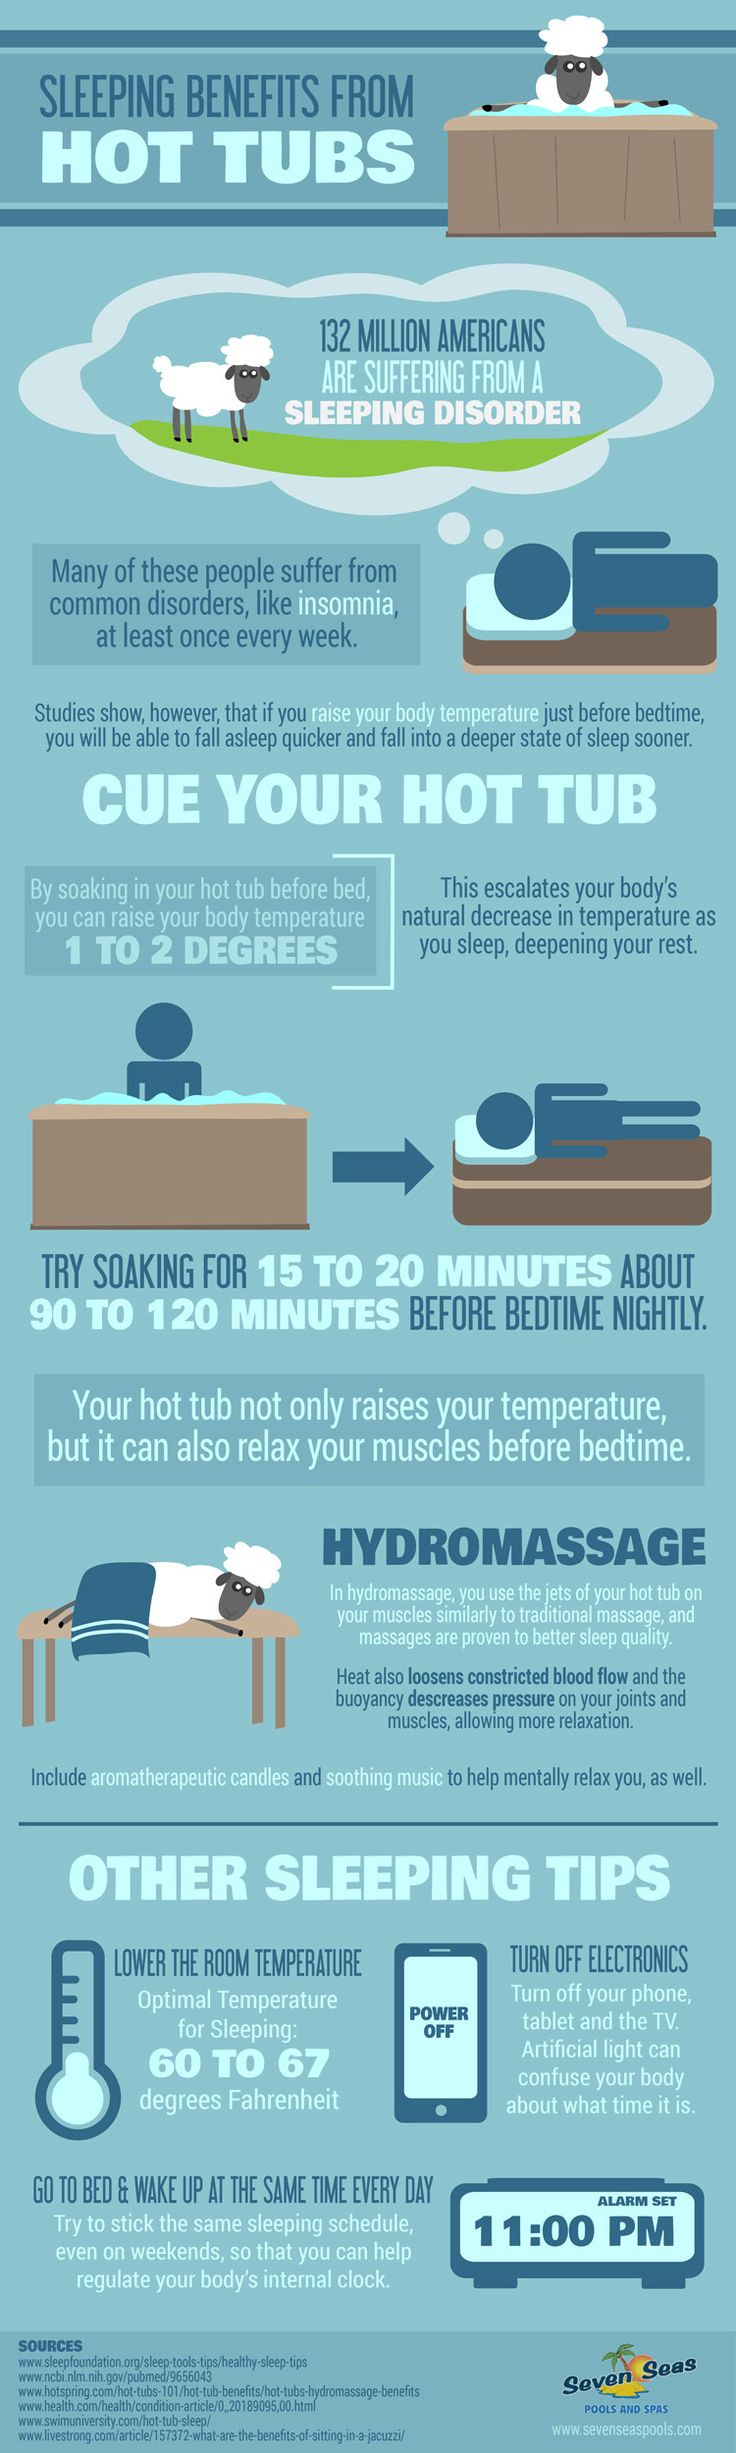 If you have a hot tub, you already know how great it is for your body and helping you relax. But did you know that it can also help you fall asleep and stay asleep more easily? This is especially great if you're trying to fight the common cold or flu. We've put together an infographic that explains how your hot tub can get you to fall asleep quicker, as well as other tips that will help to improve your sleep quality.